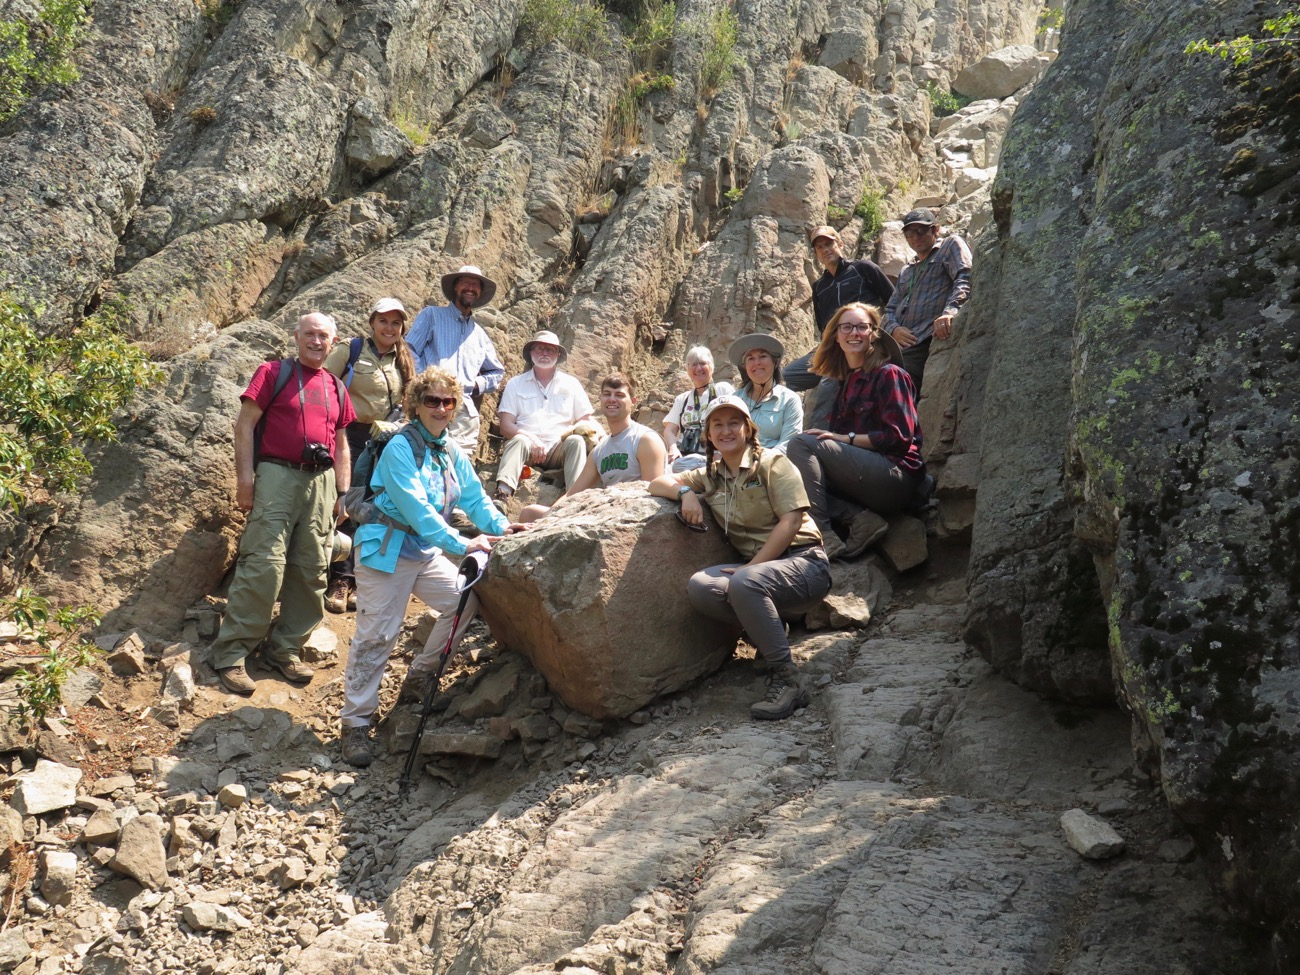 Our group at the base of Pilot Rock E Thompson photo